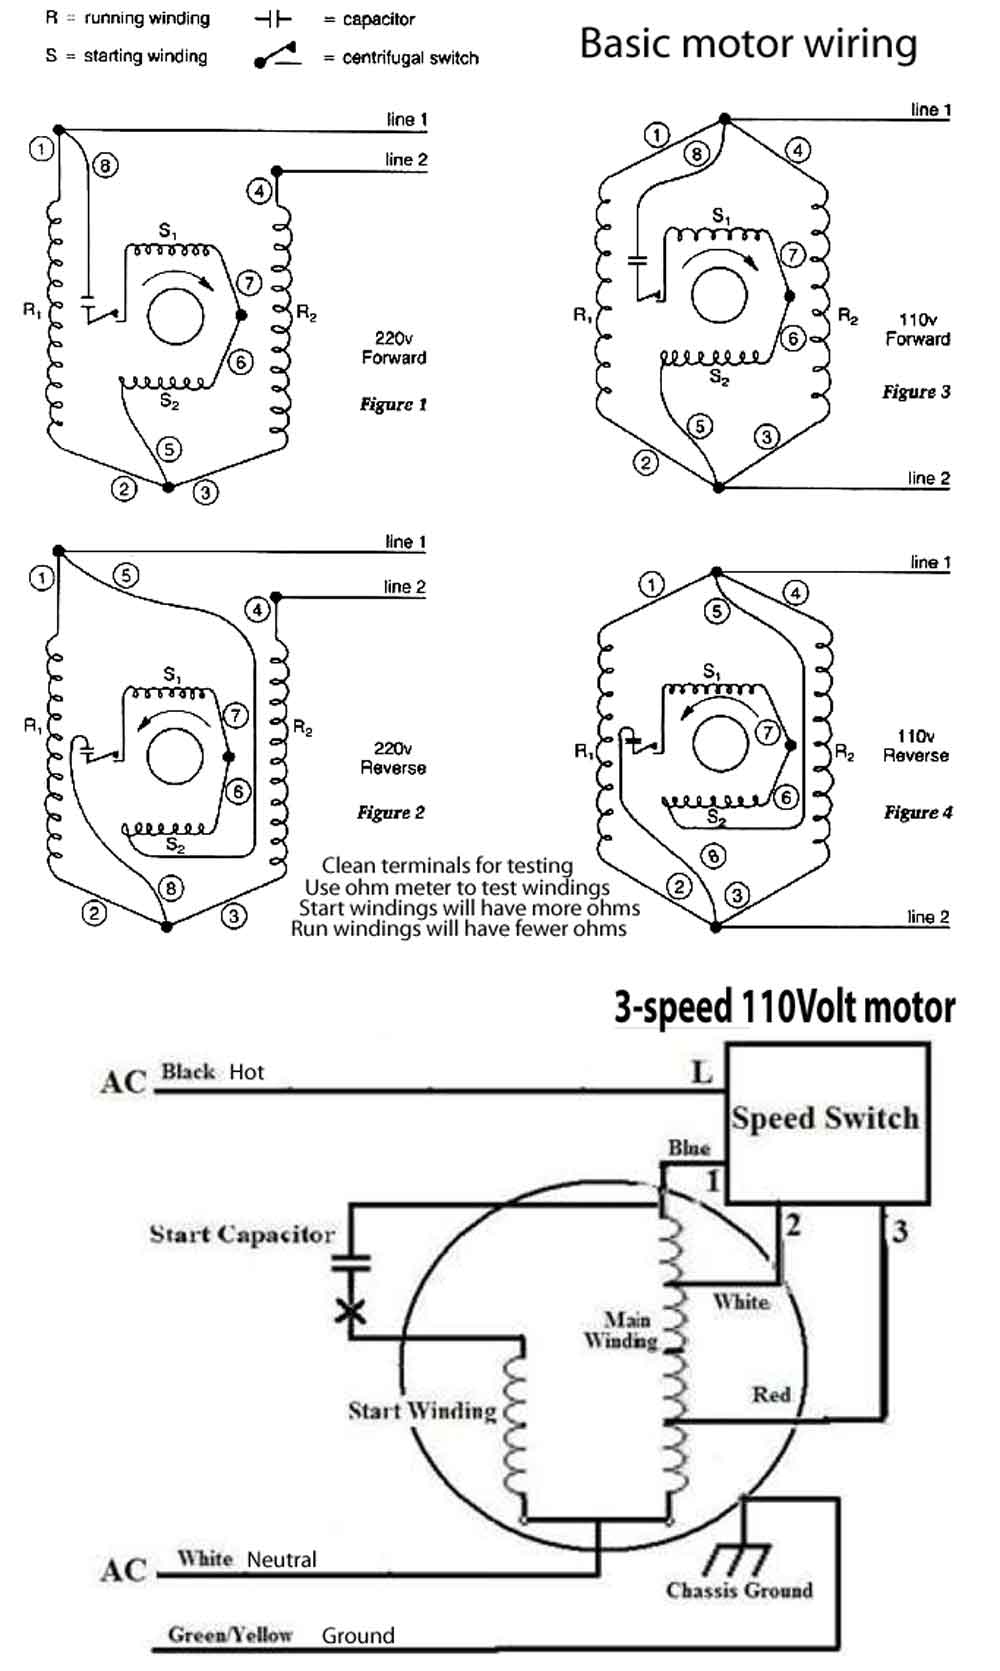 Motor wiring 500 stand fan motor wiring diagram condenser fan motor wiring diagram 3 phase fan motor wiring diagram at readyjetset.co